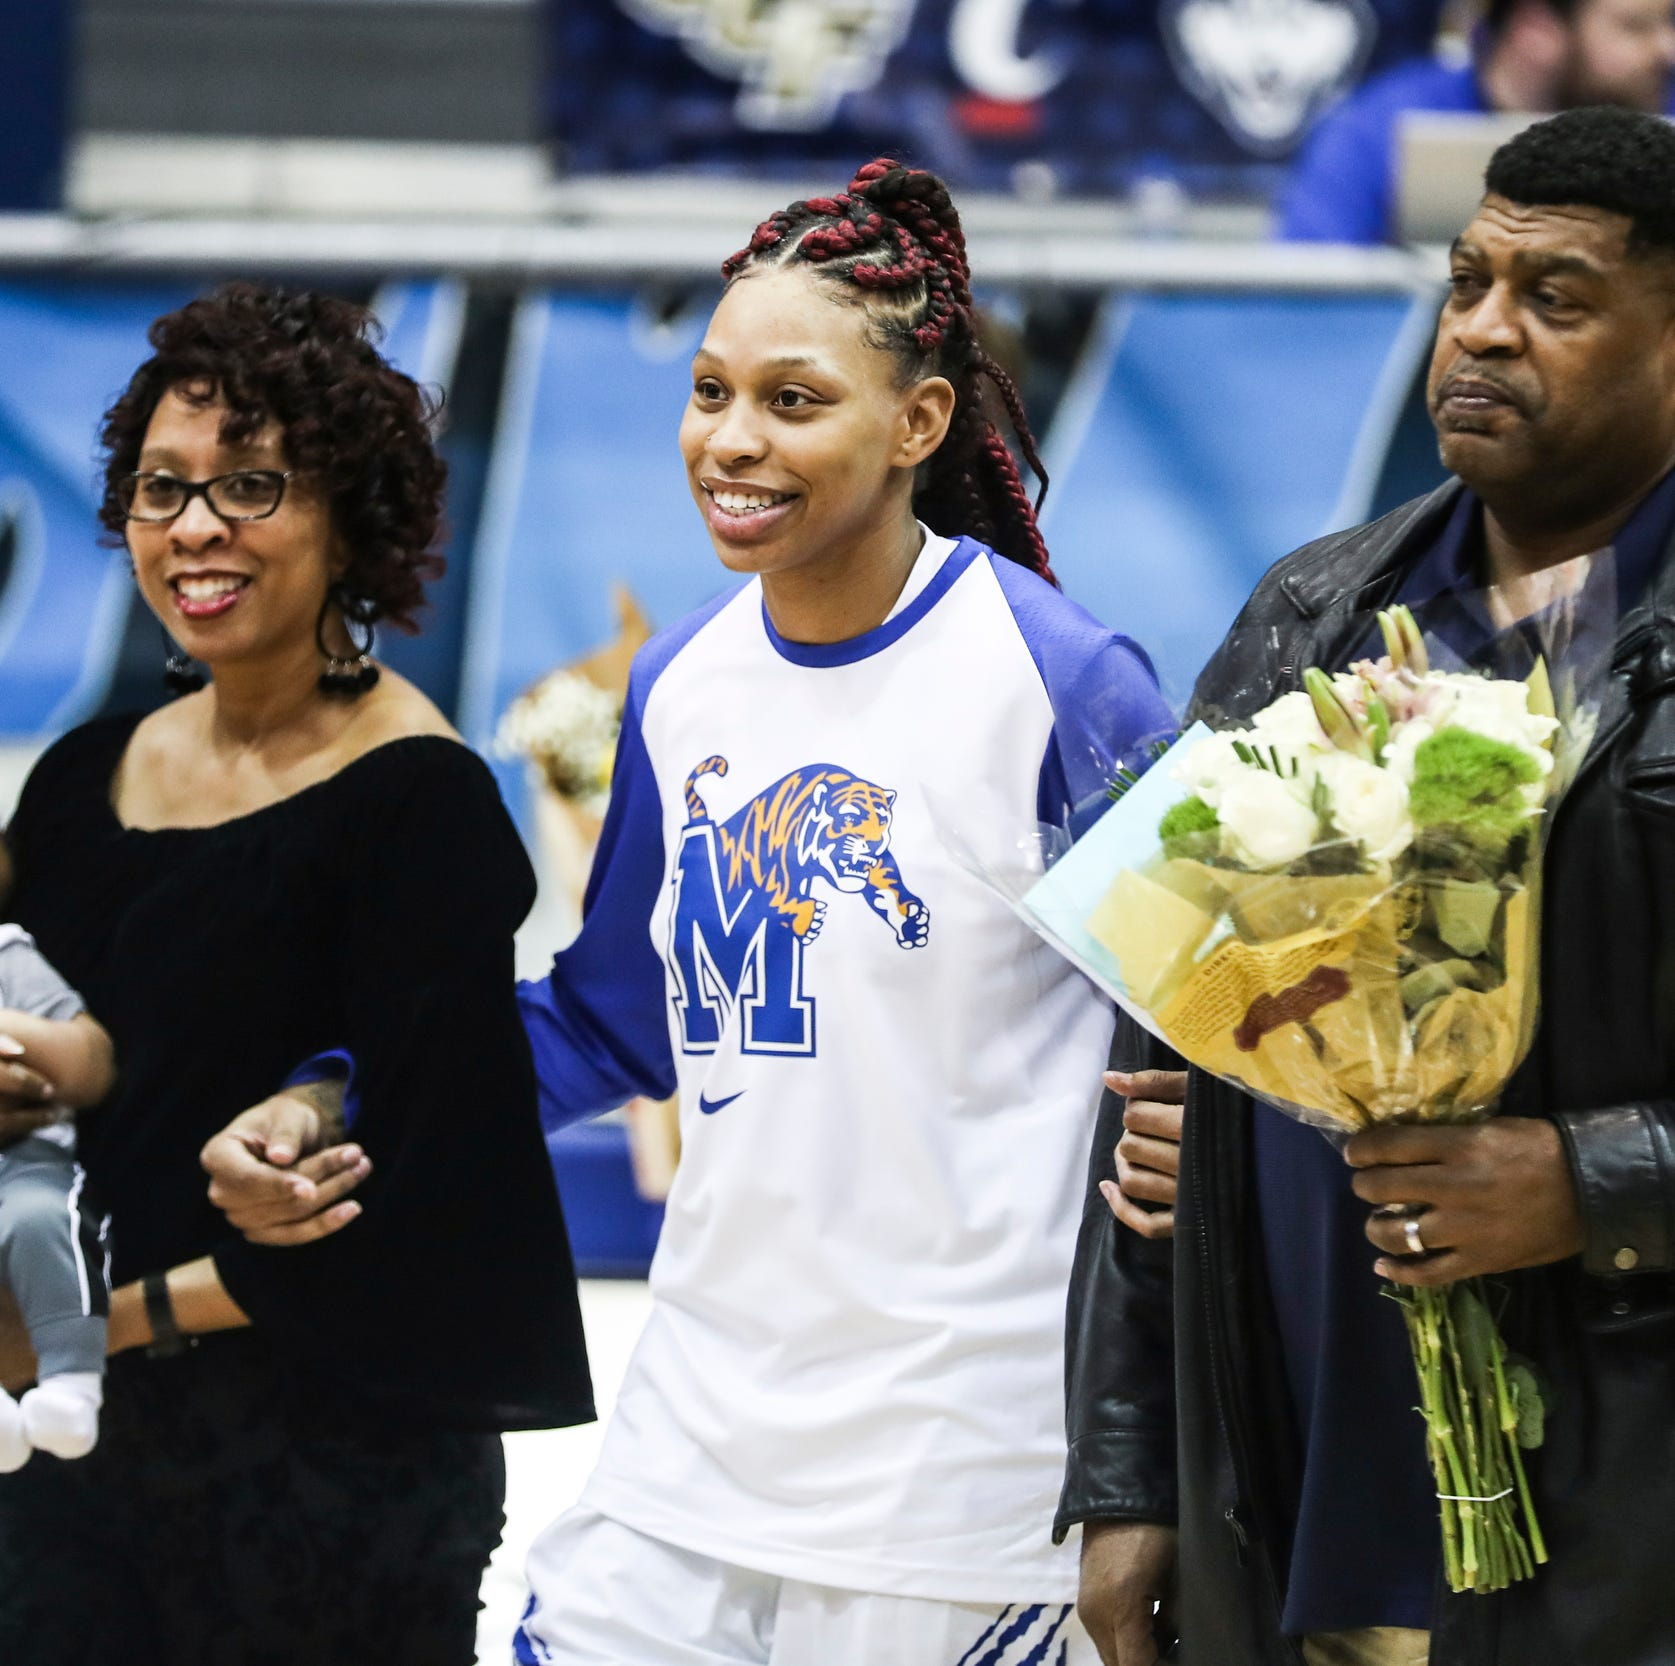 After murder, heartbreak and an unplanned pregnancy, Ashia Jones finally played for Memphis basketball